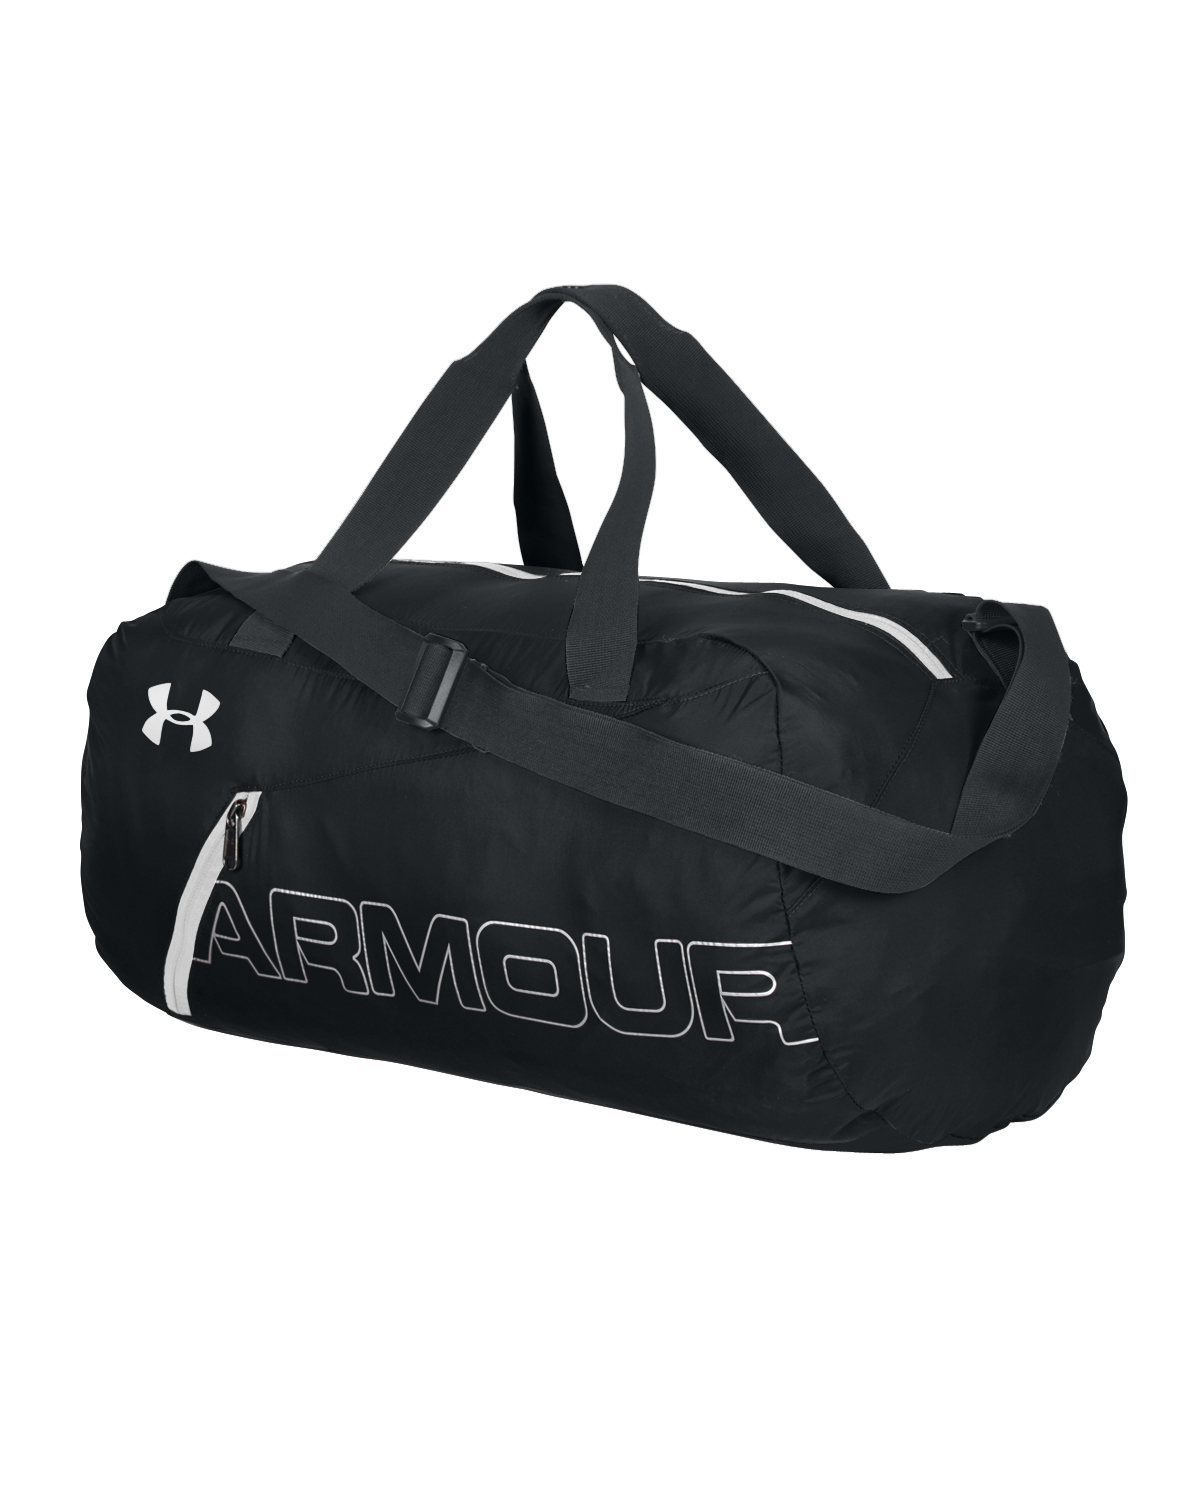 Under Armour 1256394 - Packable Duffel